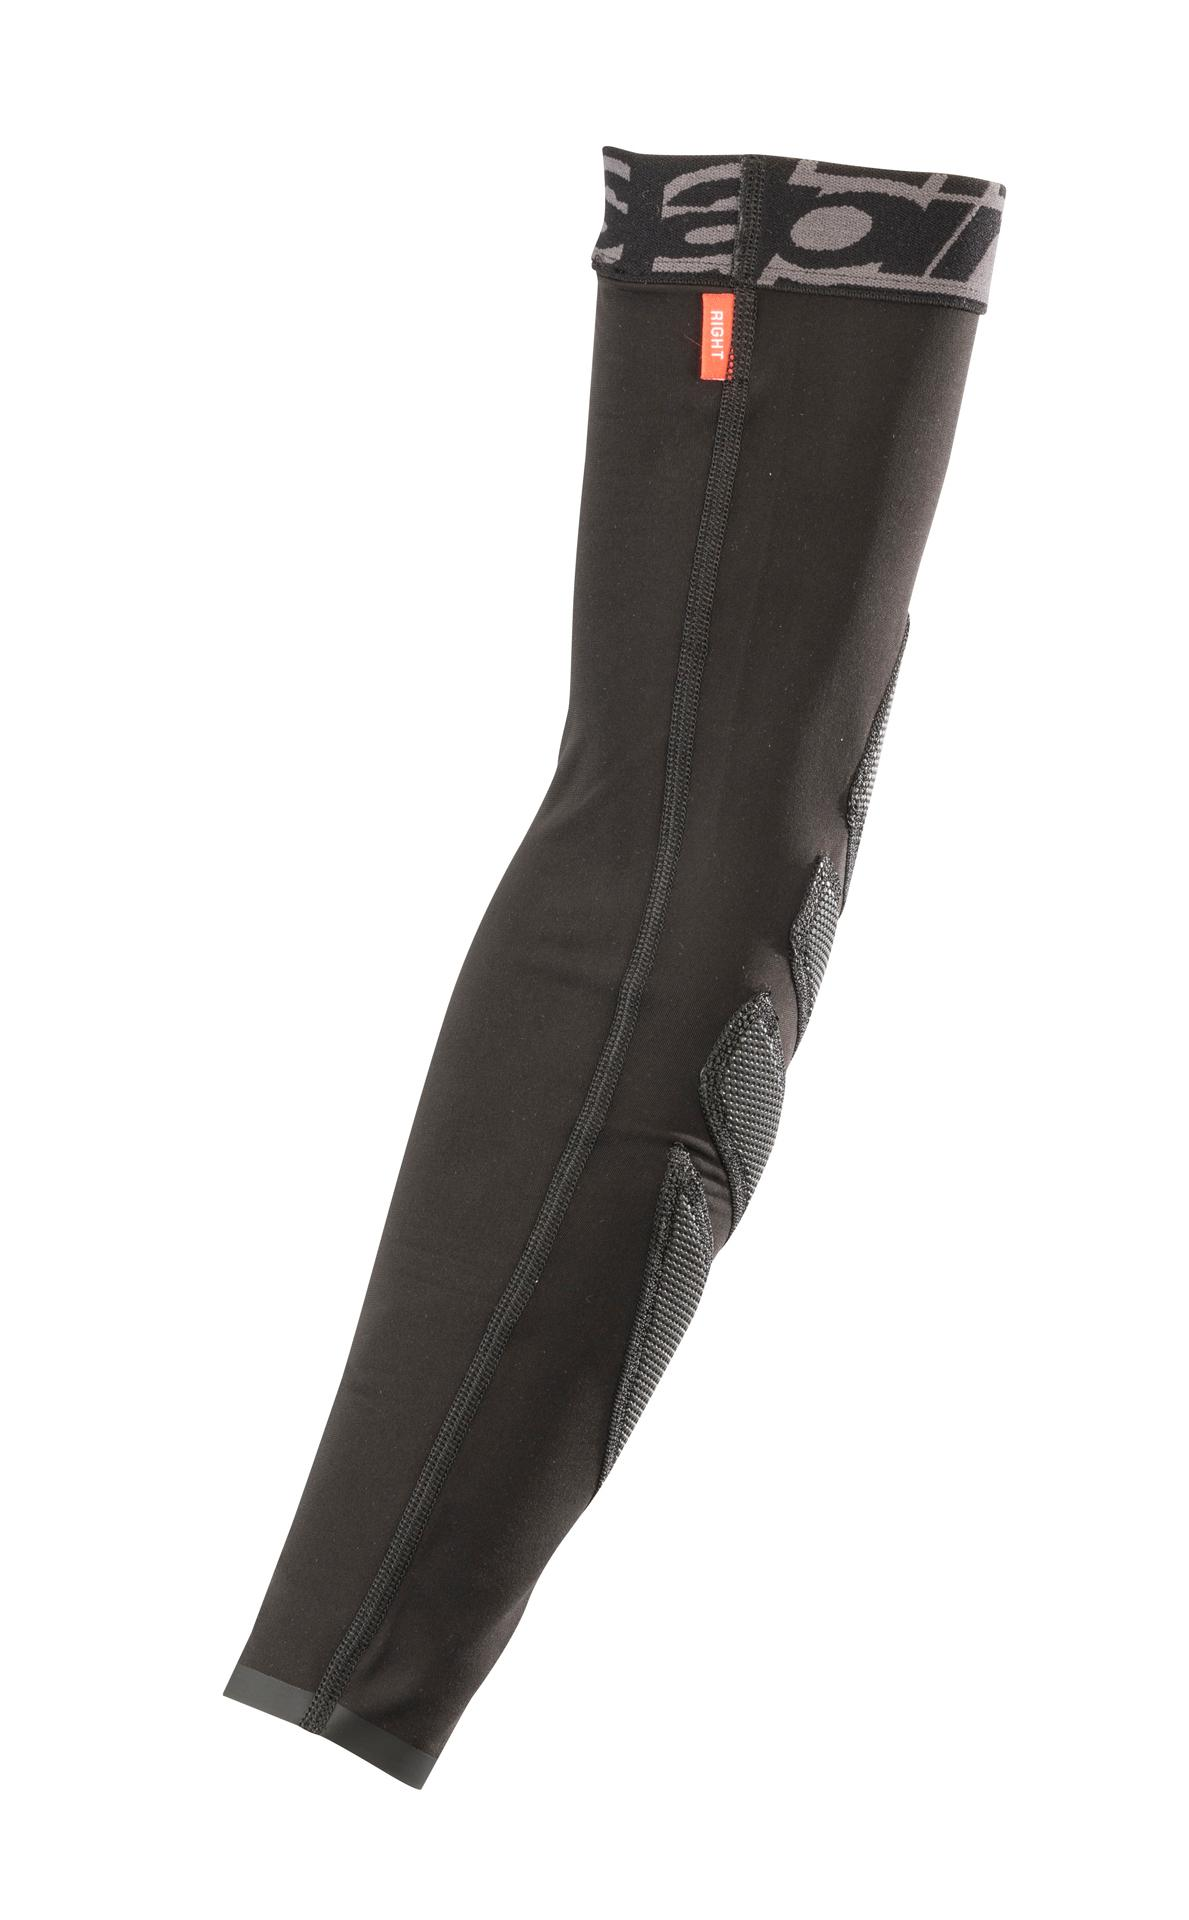 Alpinestars MTB Armstukken Zwart Grijs / AL Cascade Arm Warmer-Black Dark Shadow